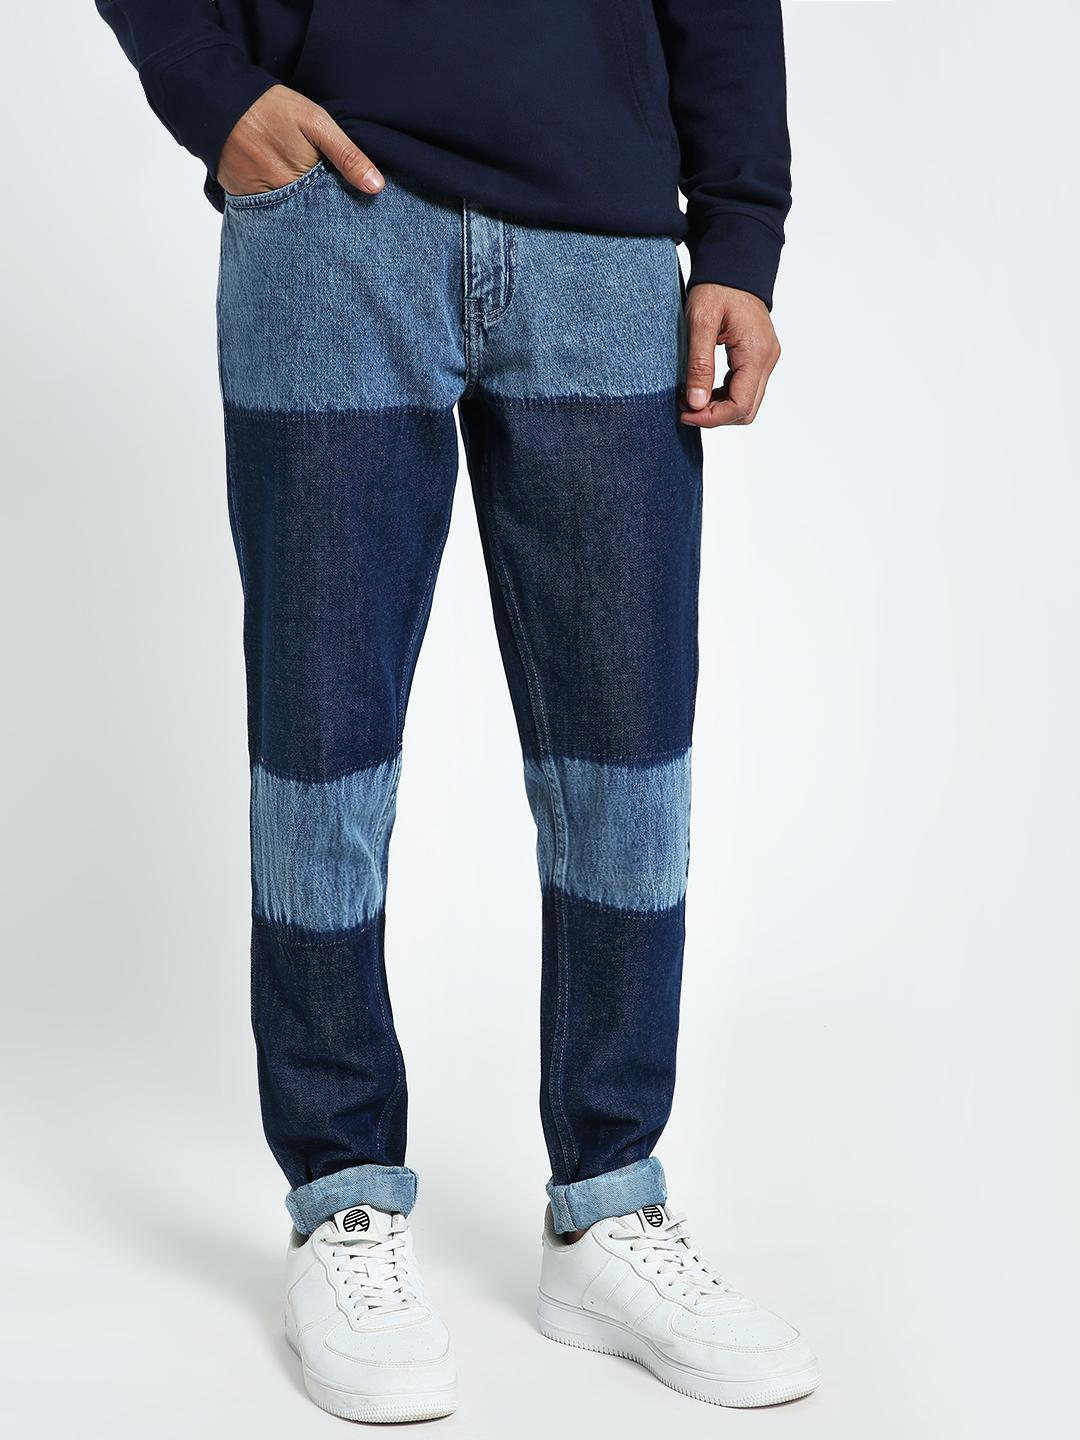 CHELSEA KING Blue Colour Block Washed Slim Jeans 1